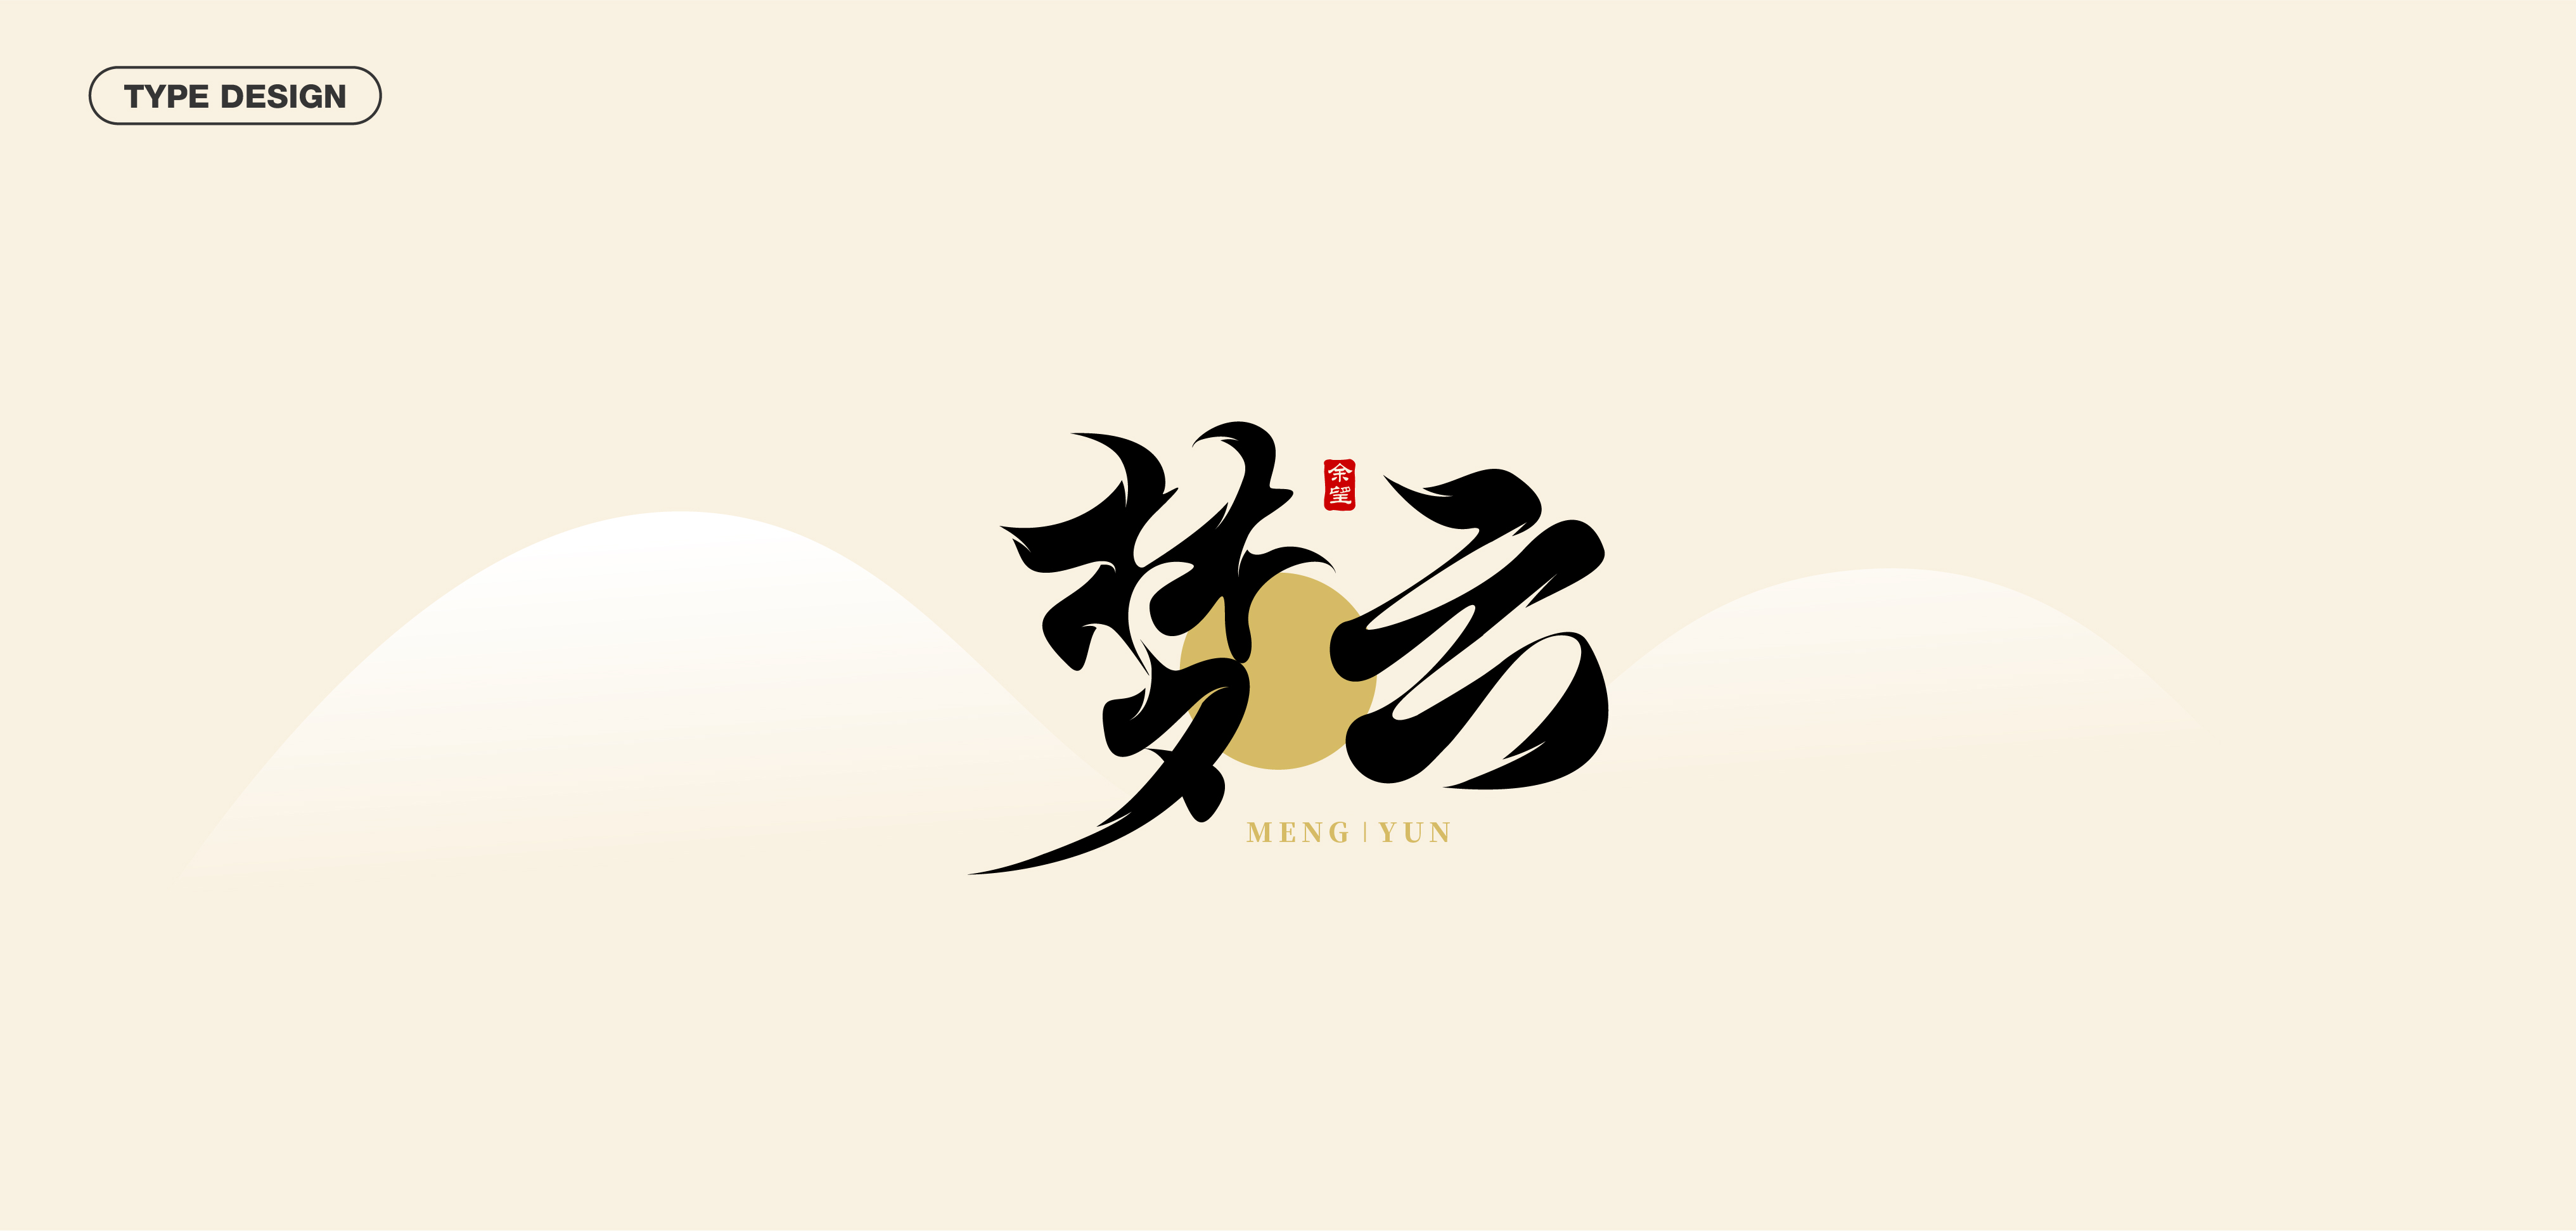 7P Collection of the latest Chinese font design schemes in 2021 #.331